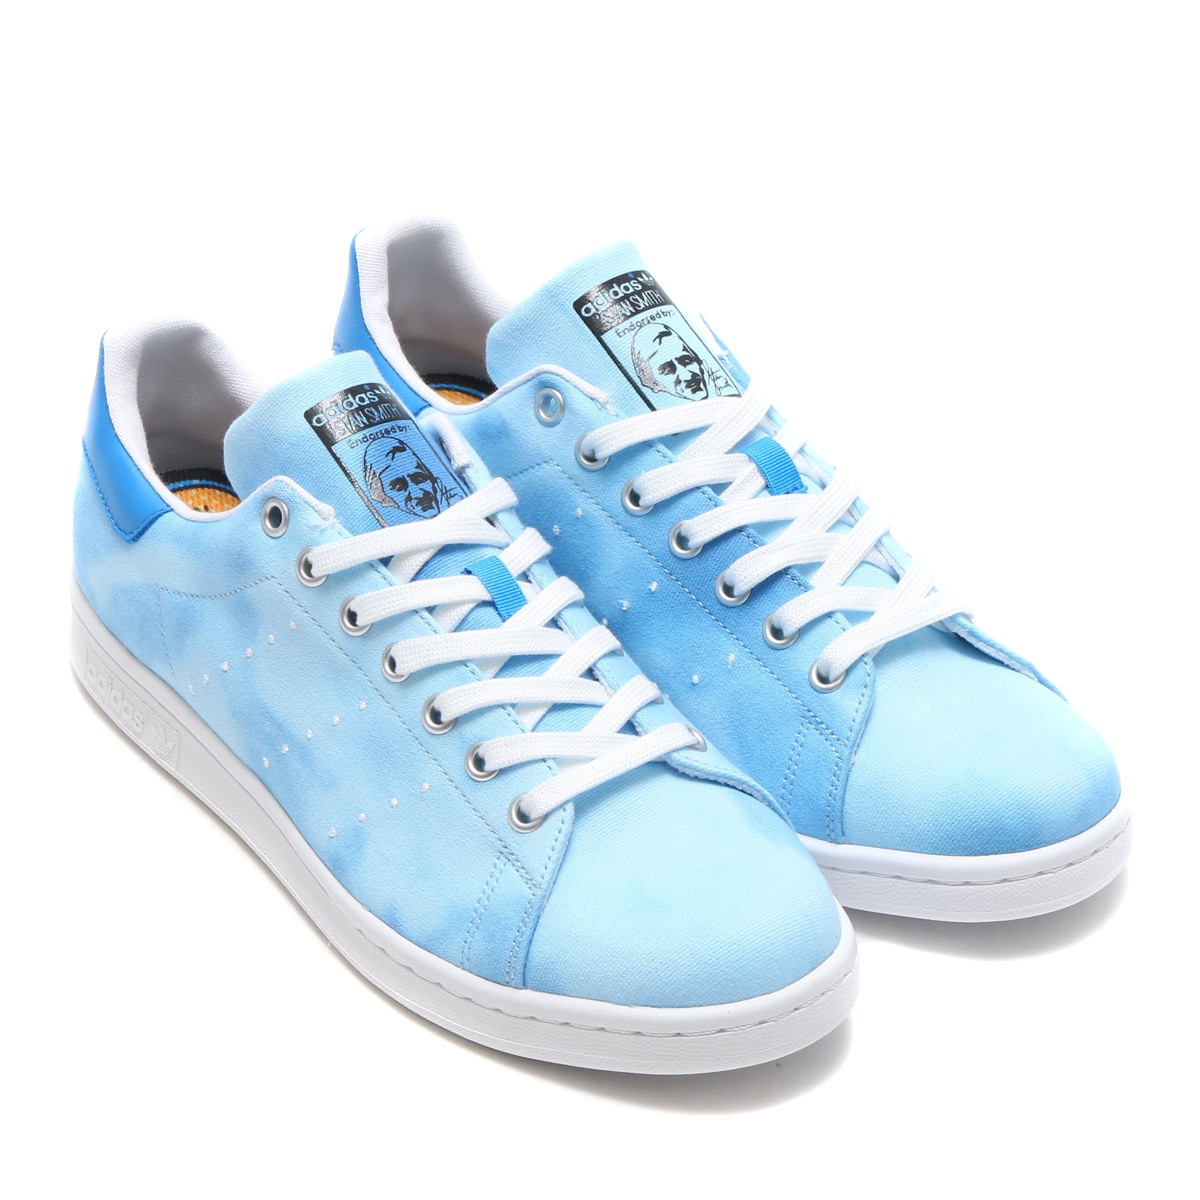 purchase cheap 2ed91 c01ad adidas Originals PW HU HOLI STAN SMITH (Adidas originals Farrell Williams  HU HOLI Stan Smith) Blue / Running White / Running White 18SS-S